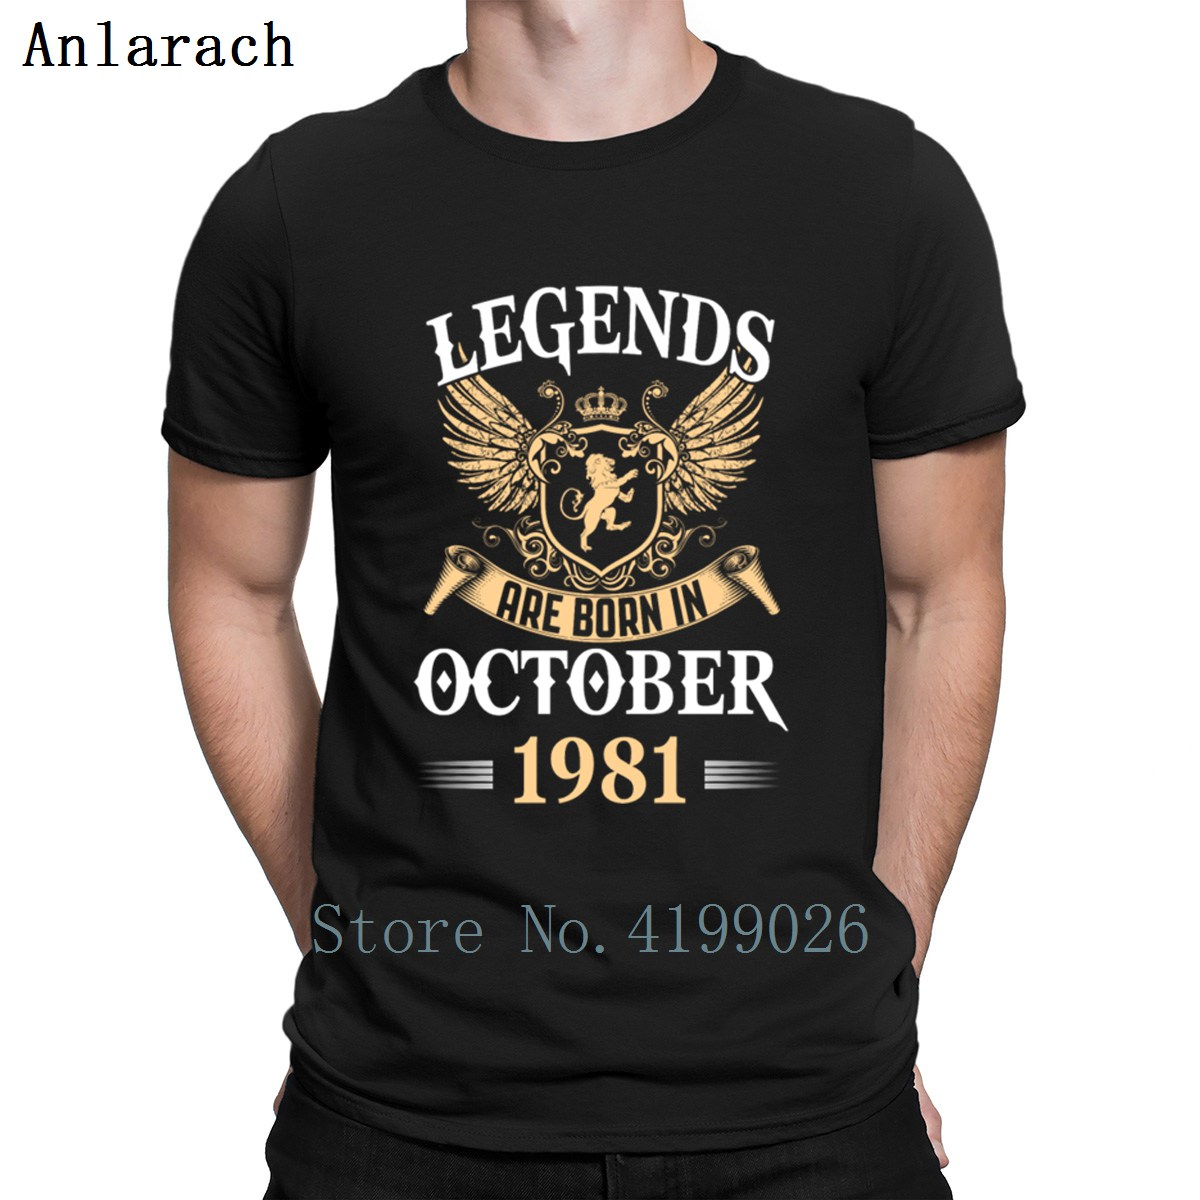 Legends Are Born In October 1981 T-Shirt Homme Hip Hop Gift S-3xl Tshirt For Men Summer Trend Character Cotton New Style